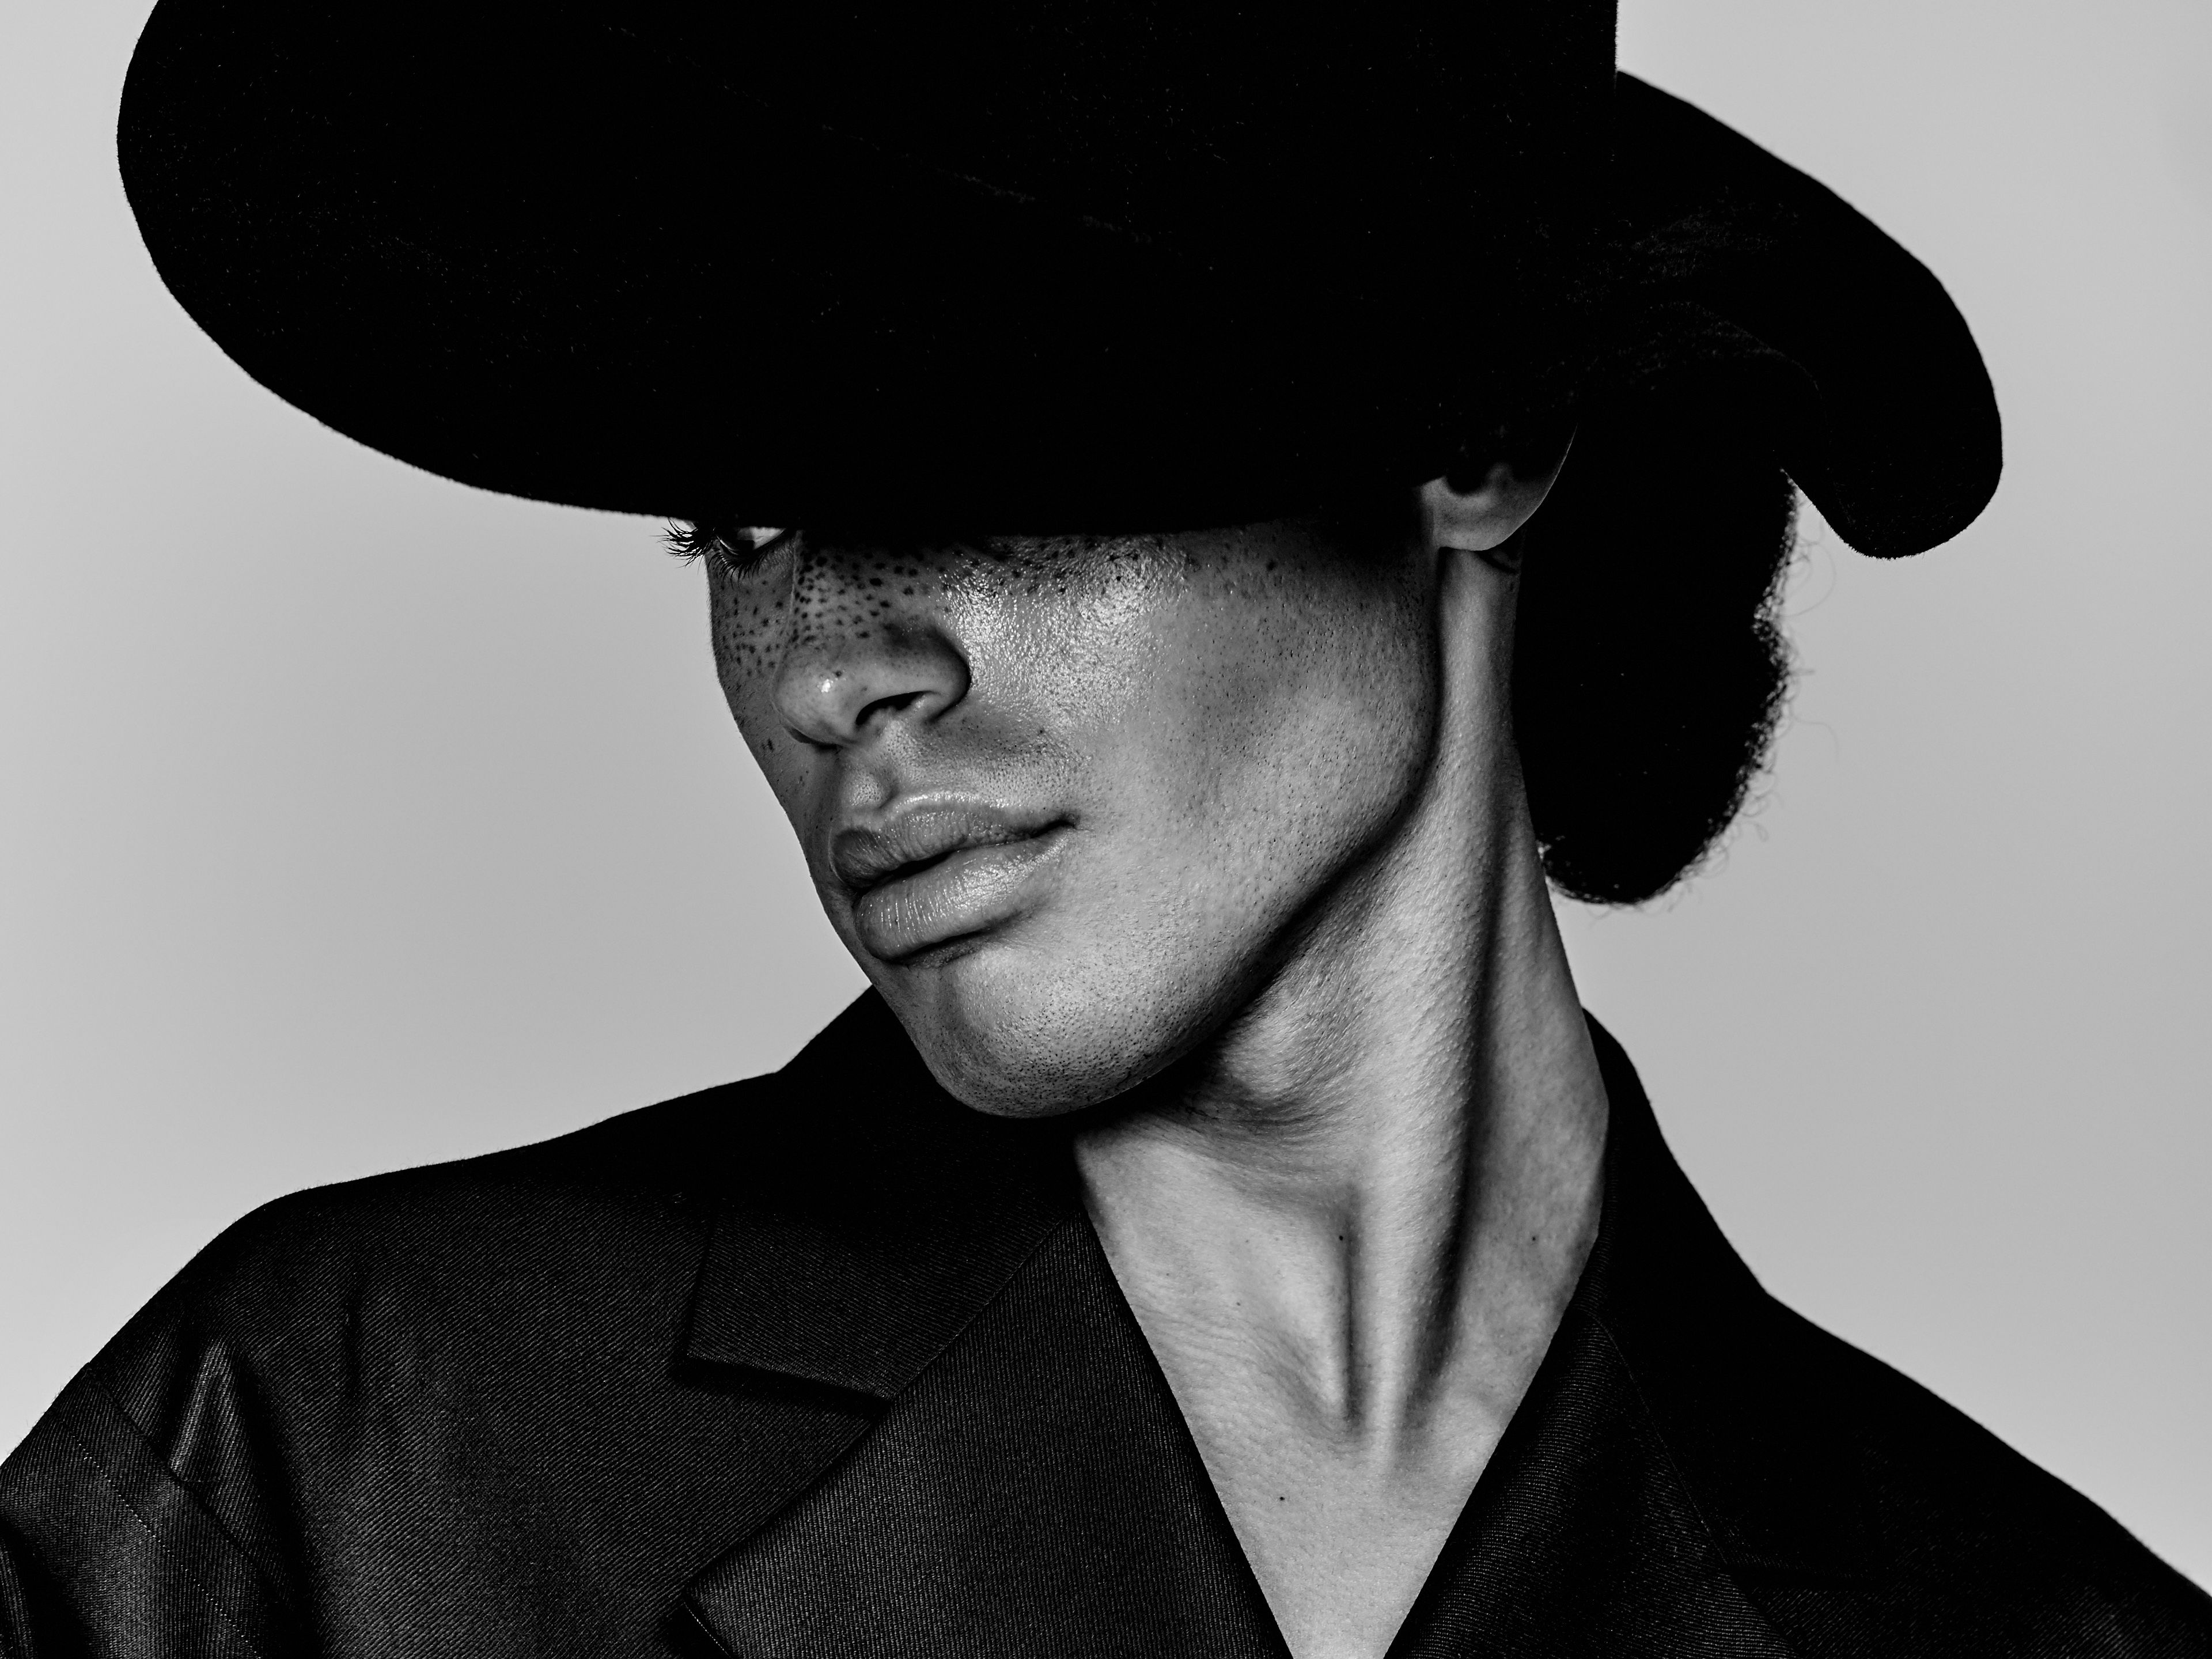 Black and white image of male model in wide brimmed hat